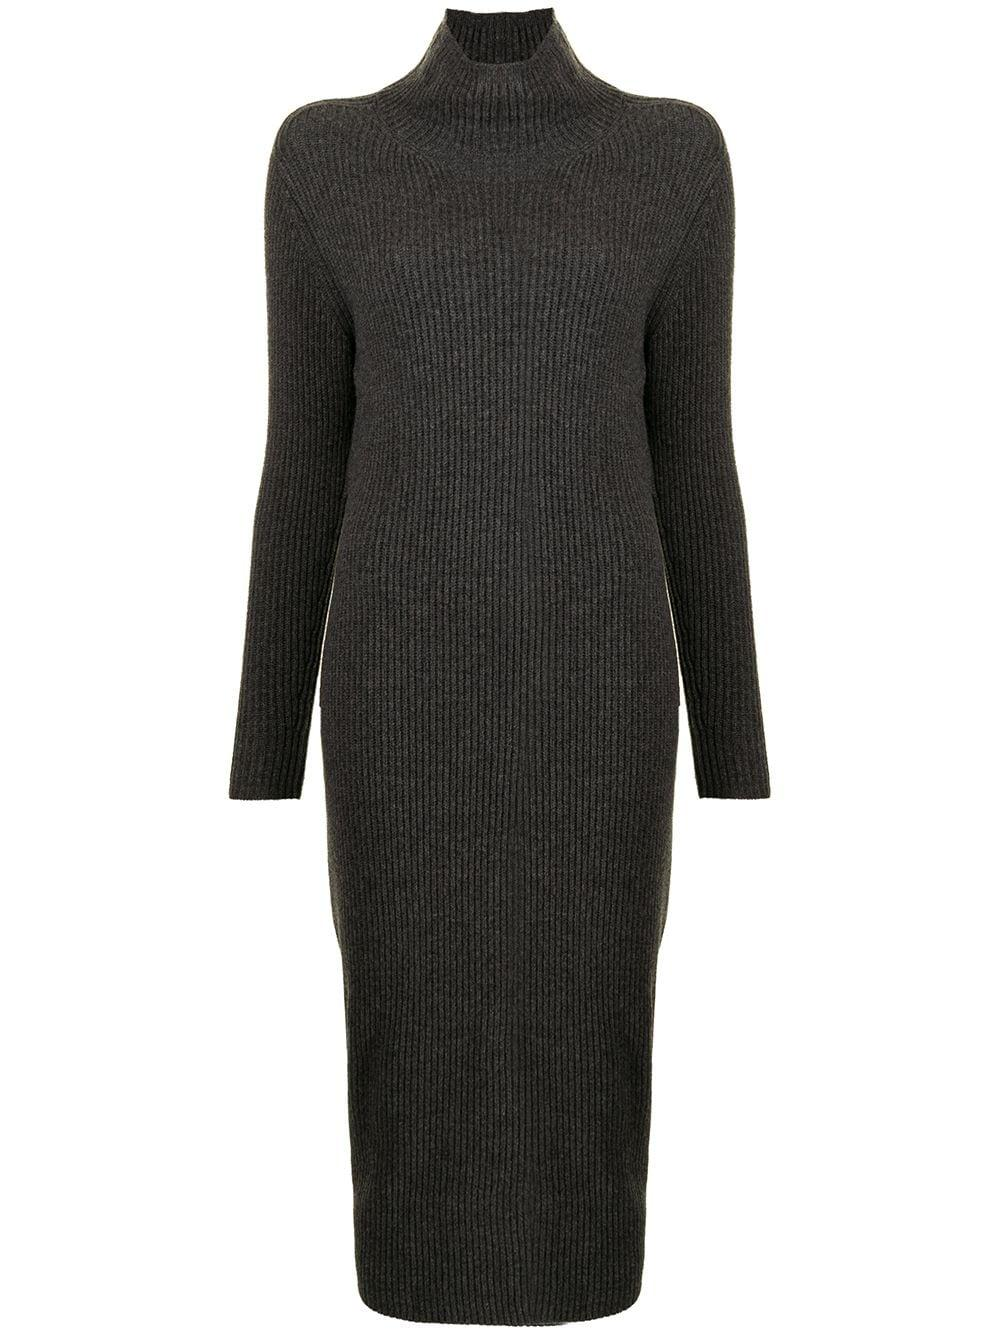 Rib Knit Midi Dress Item # 211816275001